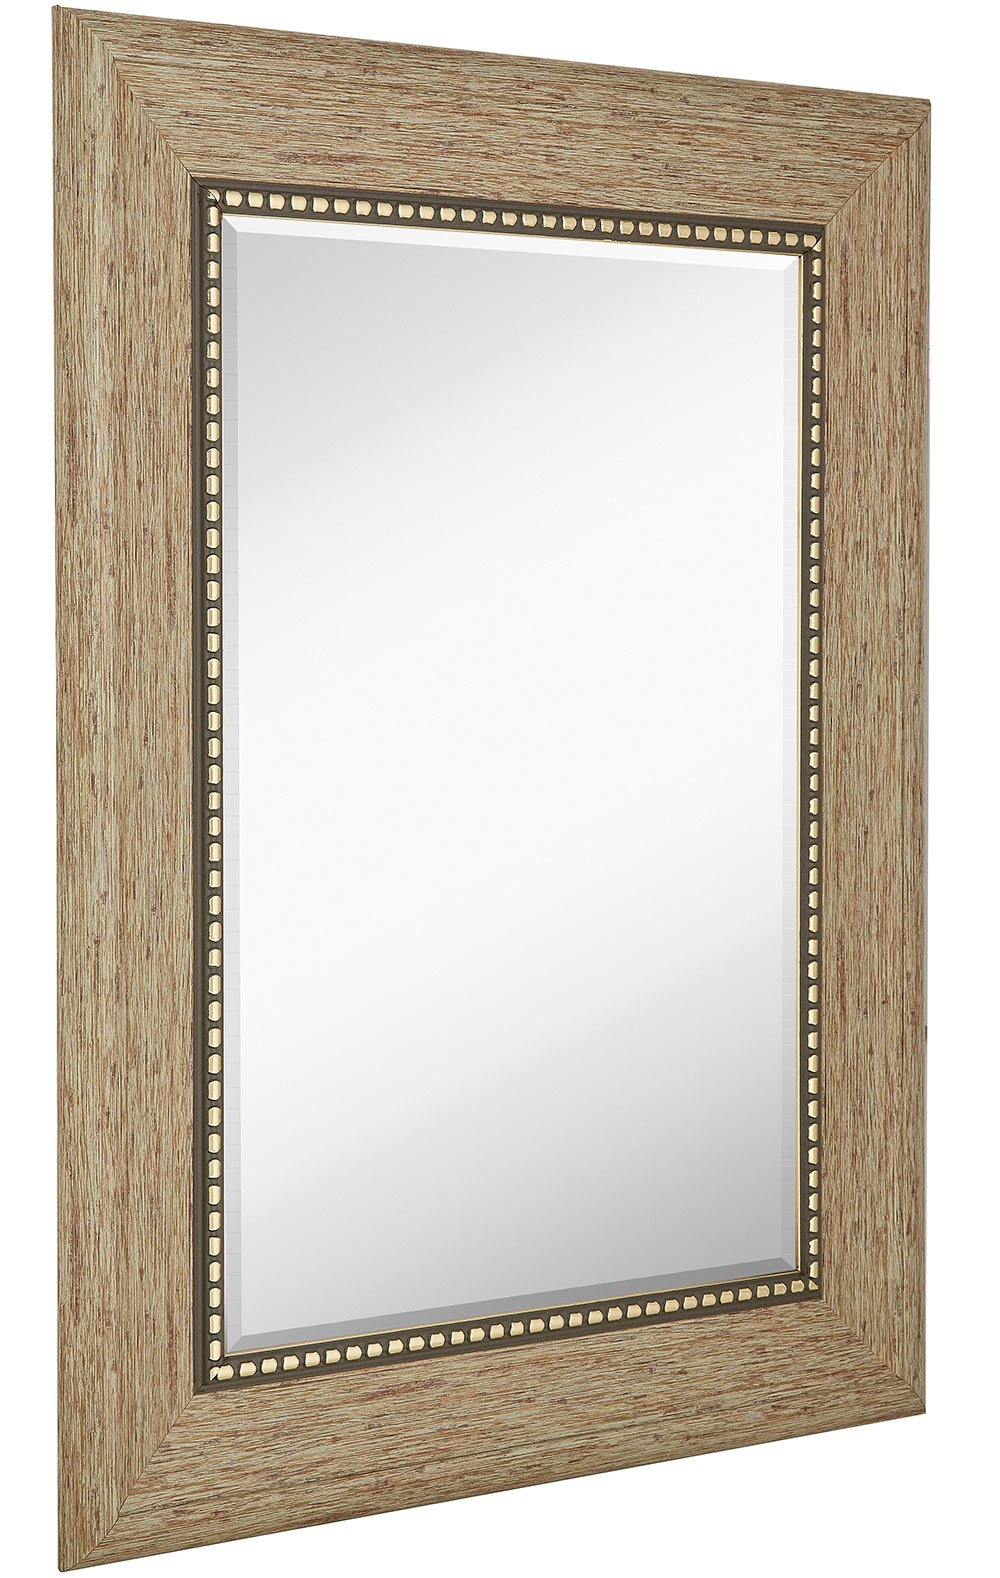 Wide Transitional Framed Mirror  | 1'' Beveled Silver Backed Glass | Vanity, Bedroom, or Bathroom | Mirrored Rectangle Hangs Horizontal or Vertical Thick Frame | 30'' x 40'' Inches Style B